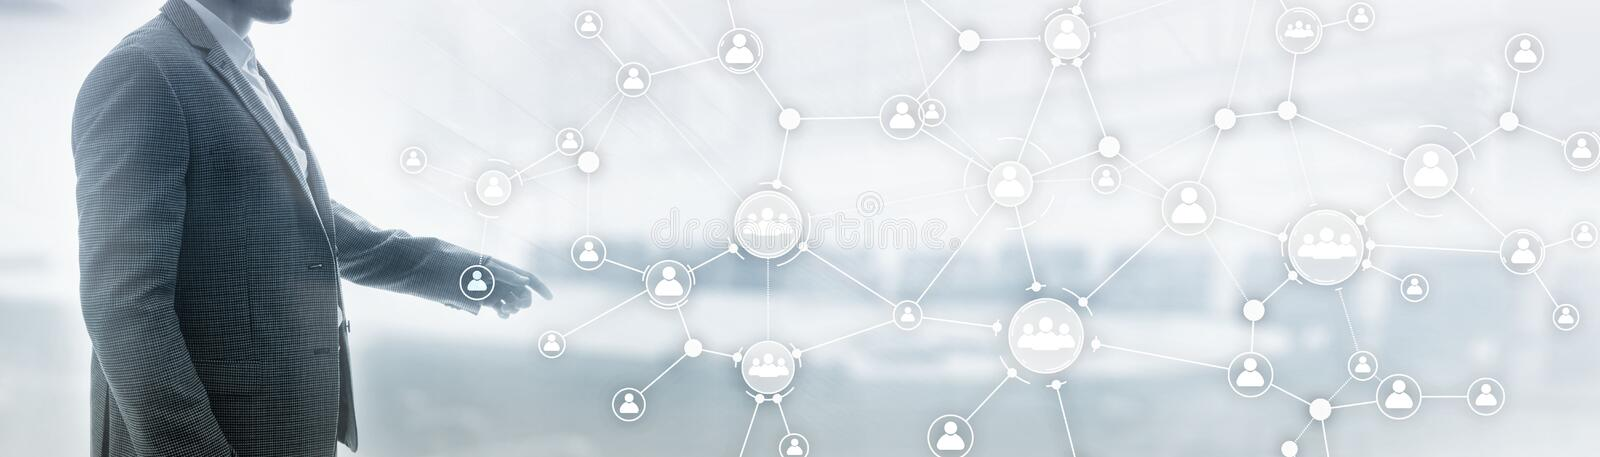 Social media icon people. Communication background. Universal elongated background for the site. royalty free stock photo